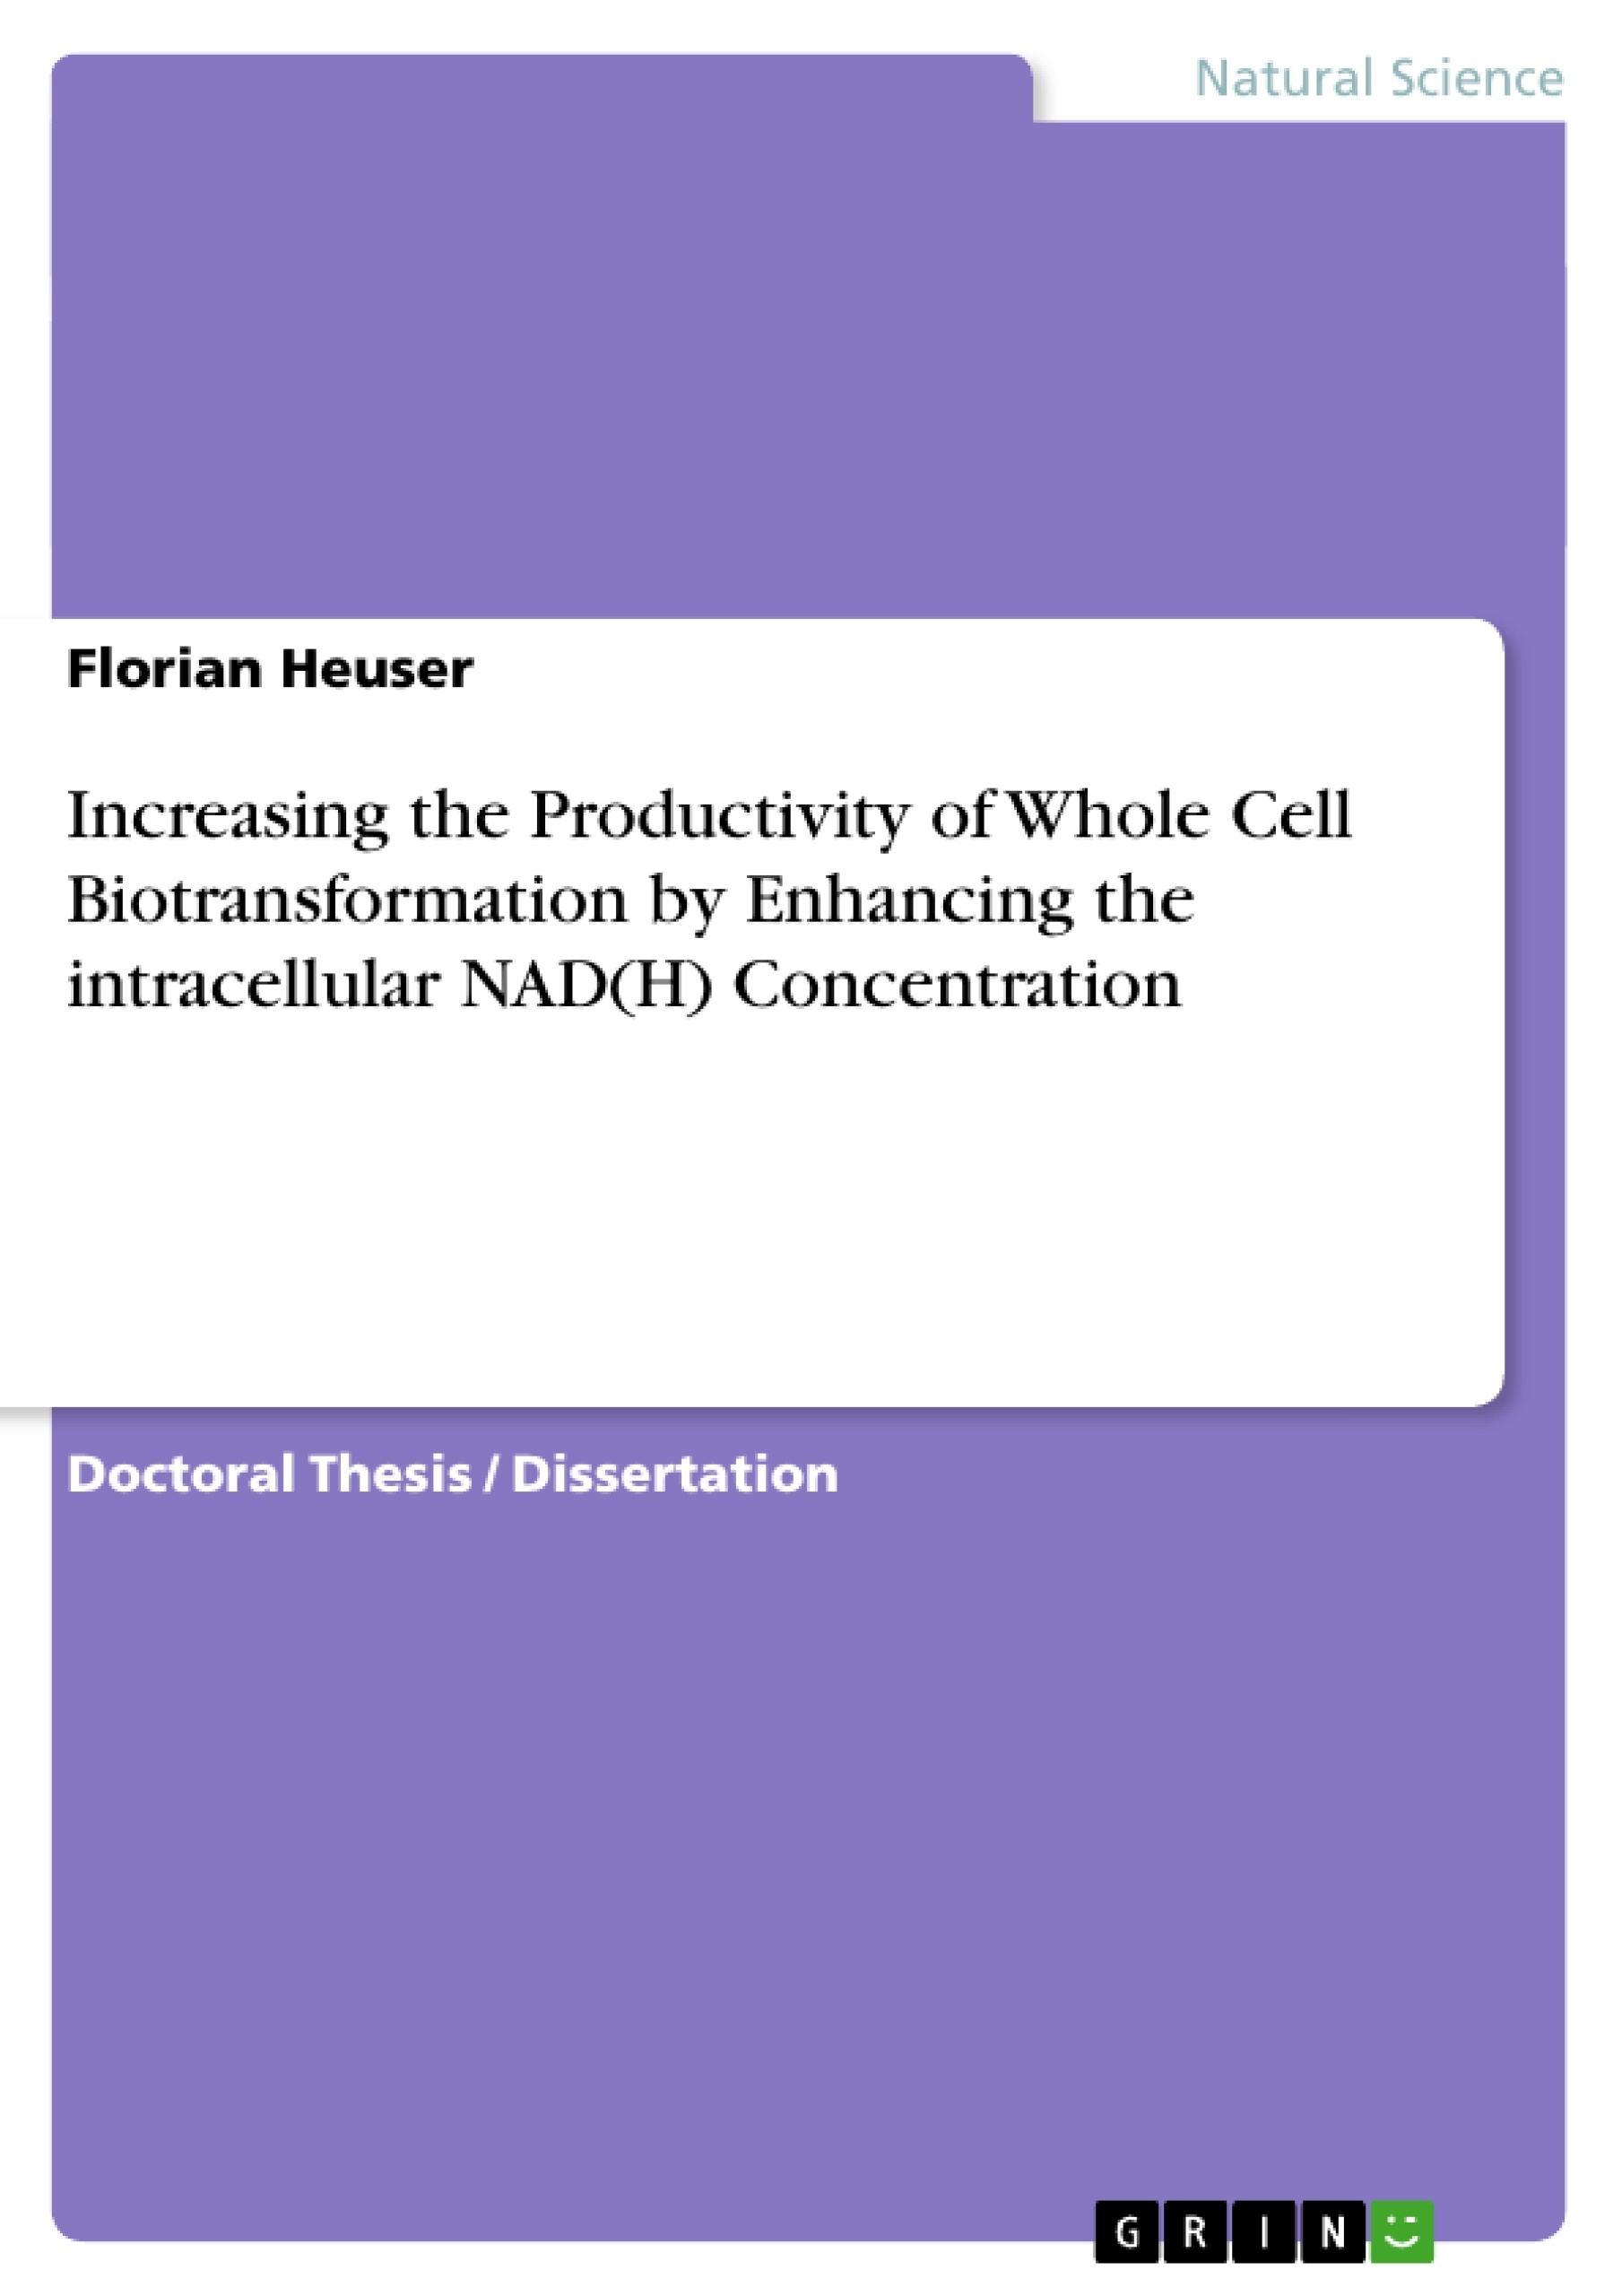 Title: Increasing the Productivity of Whole Cell Biotransformation by Enhancing the intracellular NAD(H) Concentration